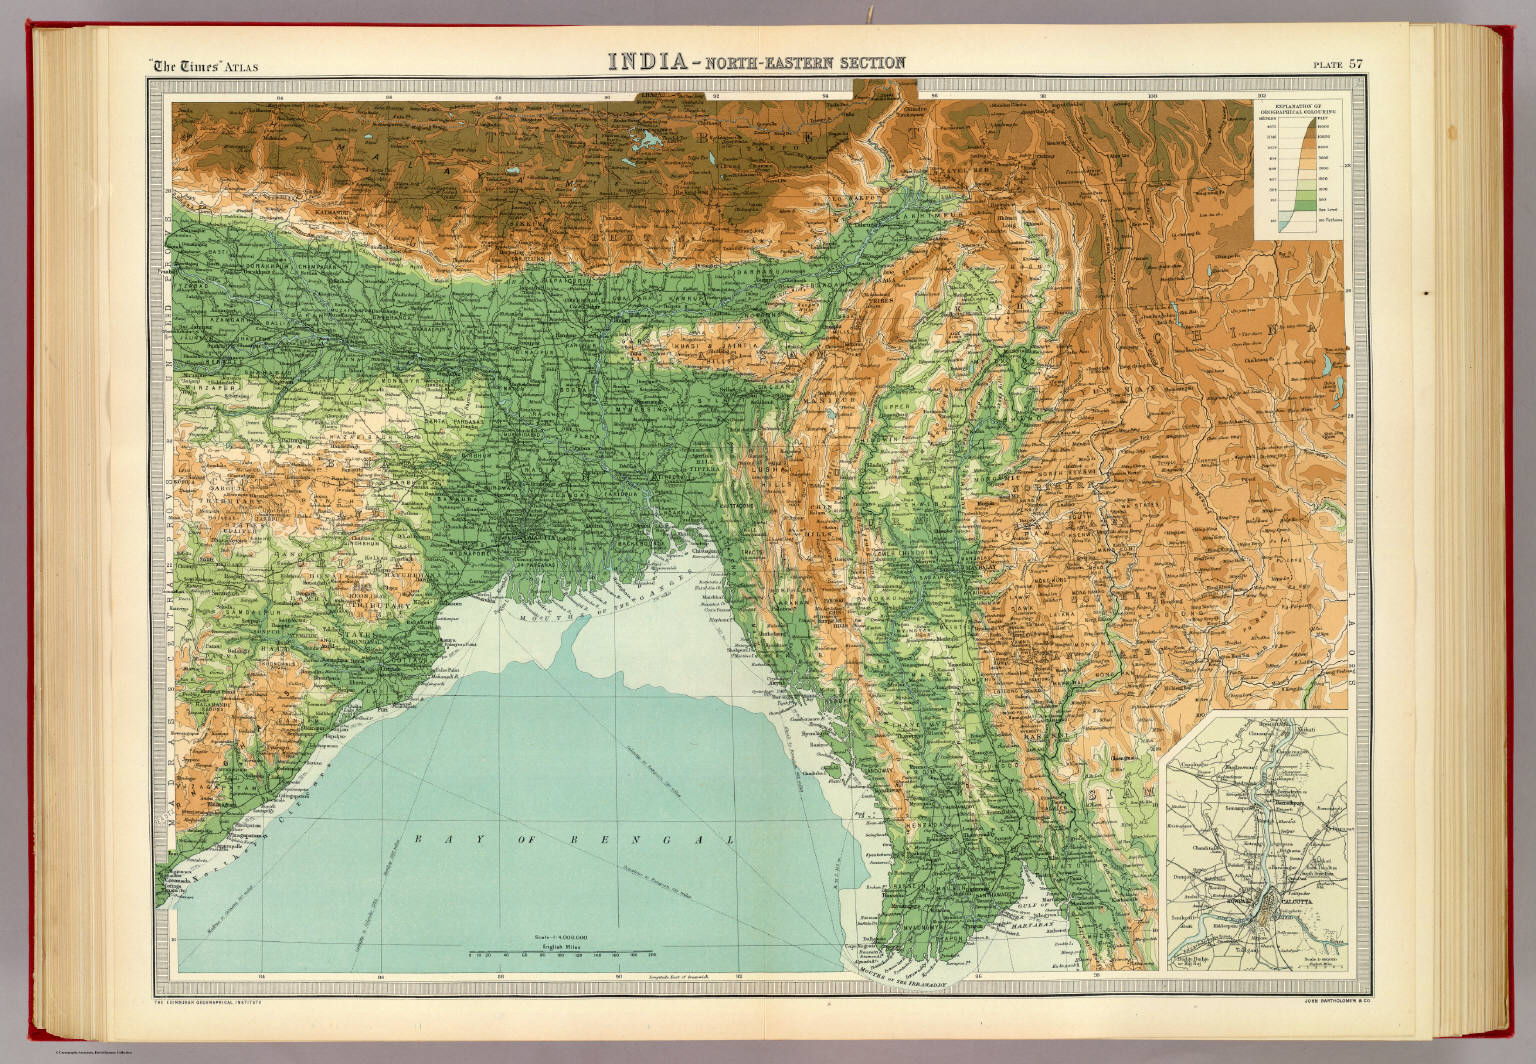 India North Eastern Section David Rumsey Historical Map Collection